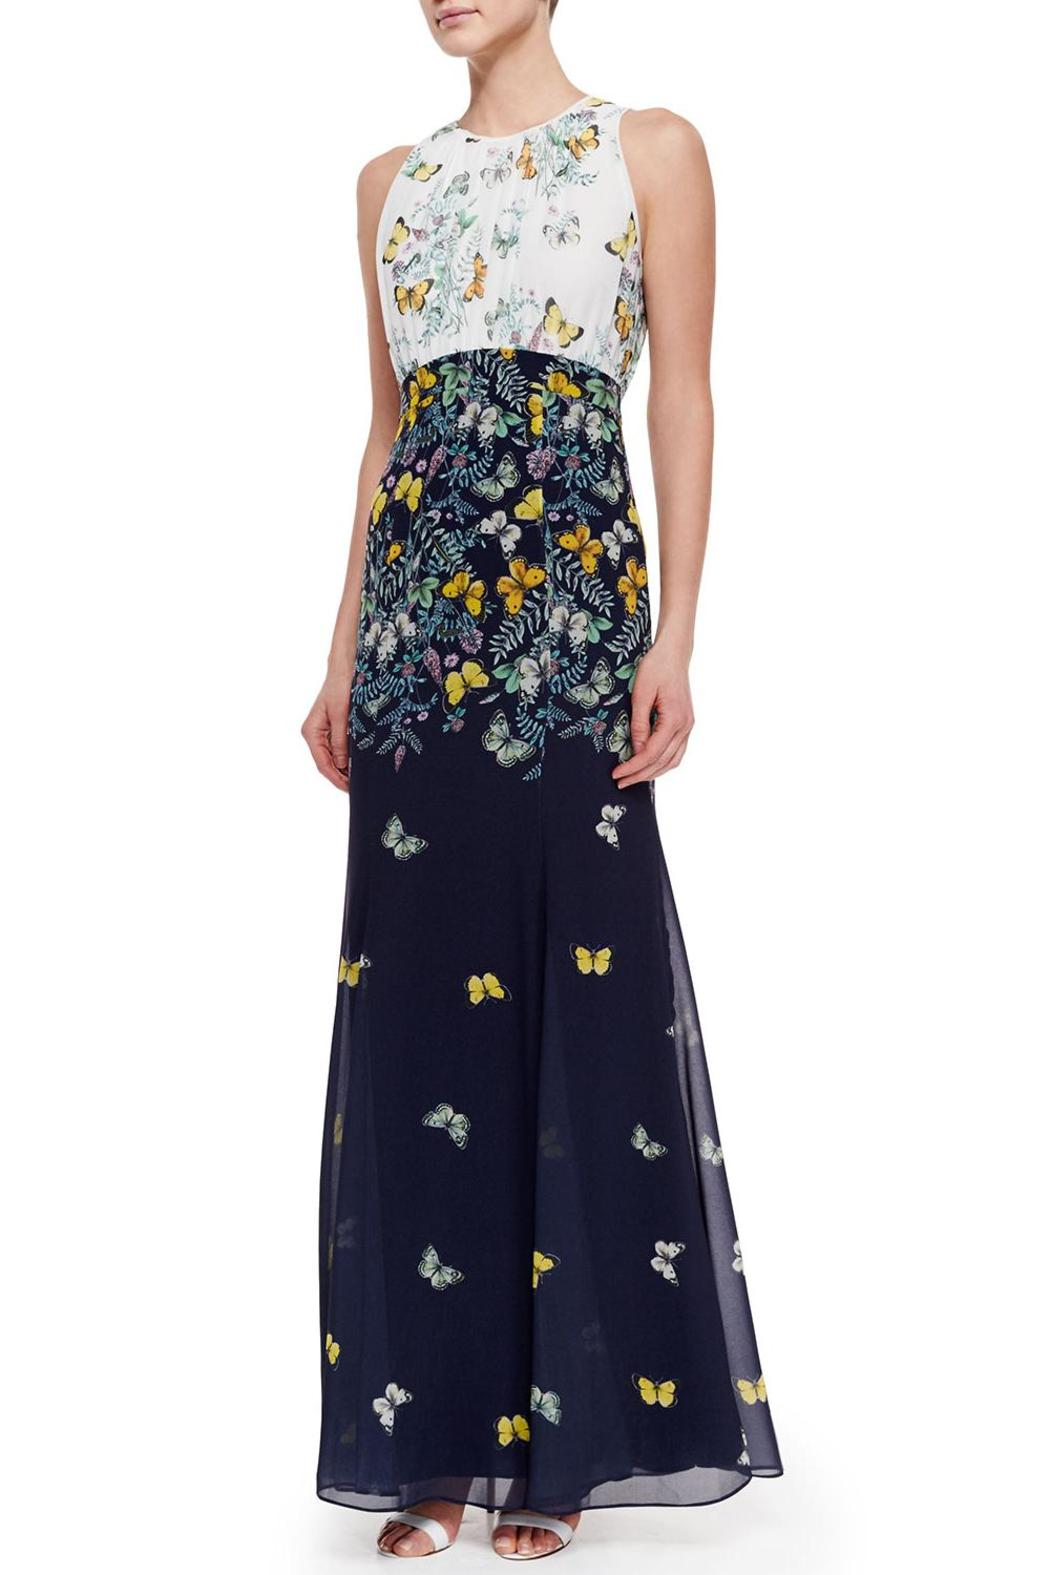 Erin Fetherston Butterfly Maxi Dress from New Jersey by District 5 ...